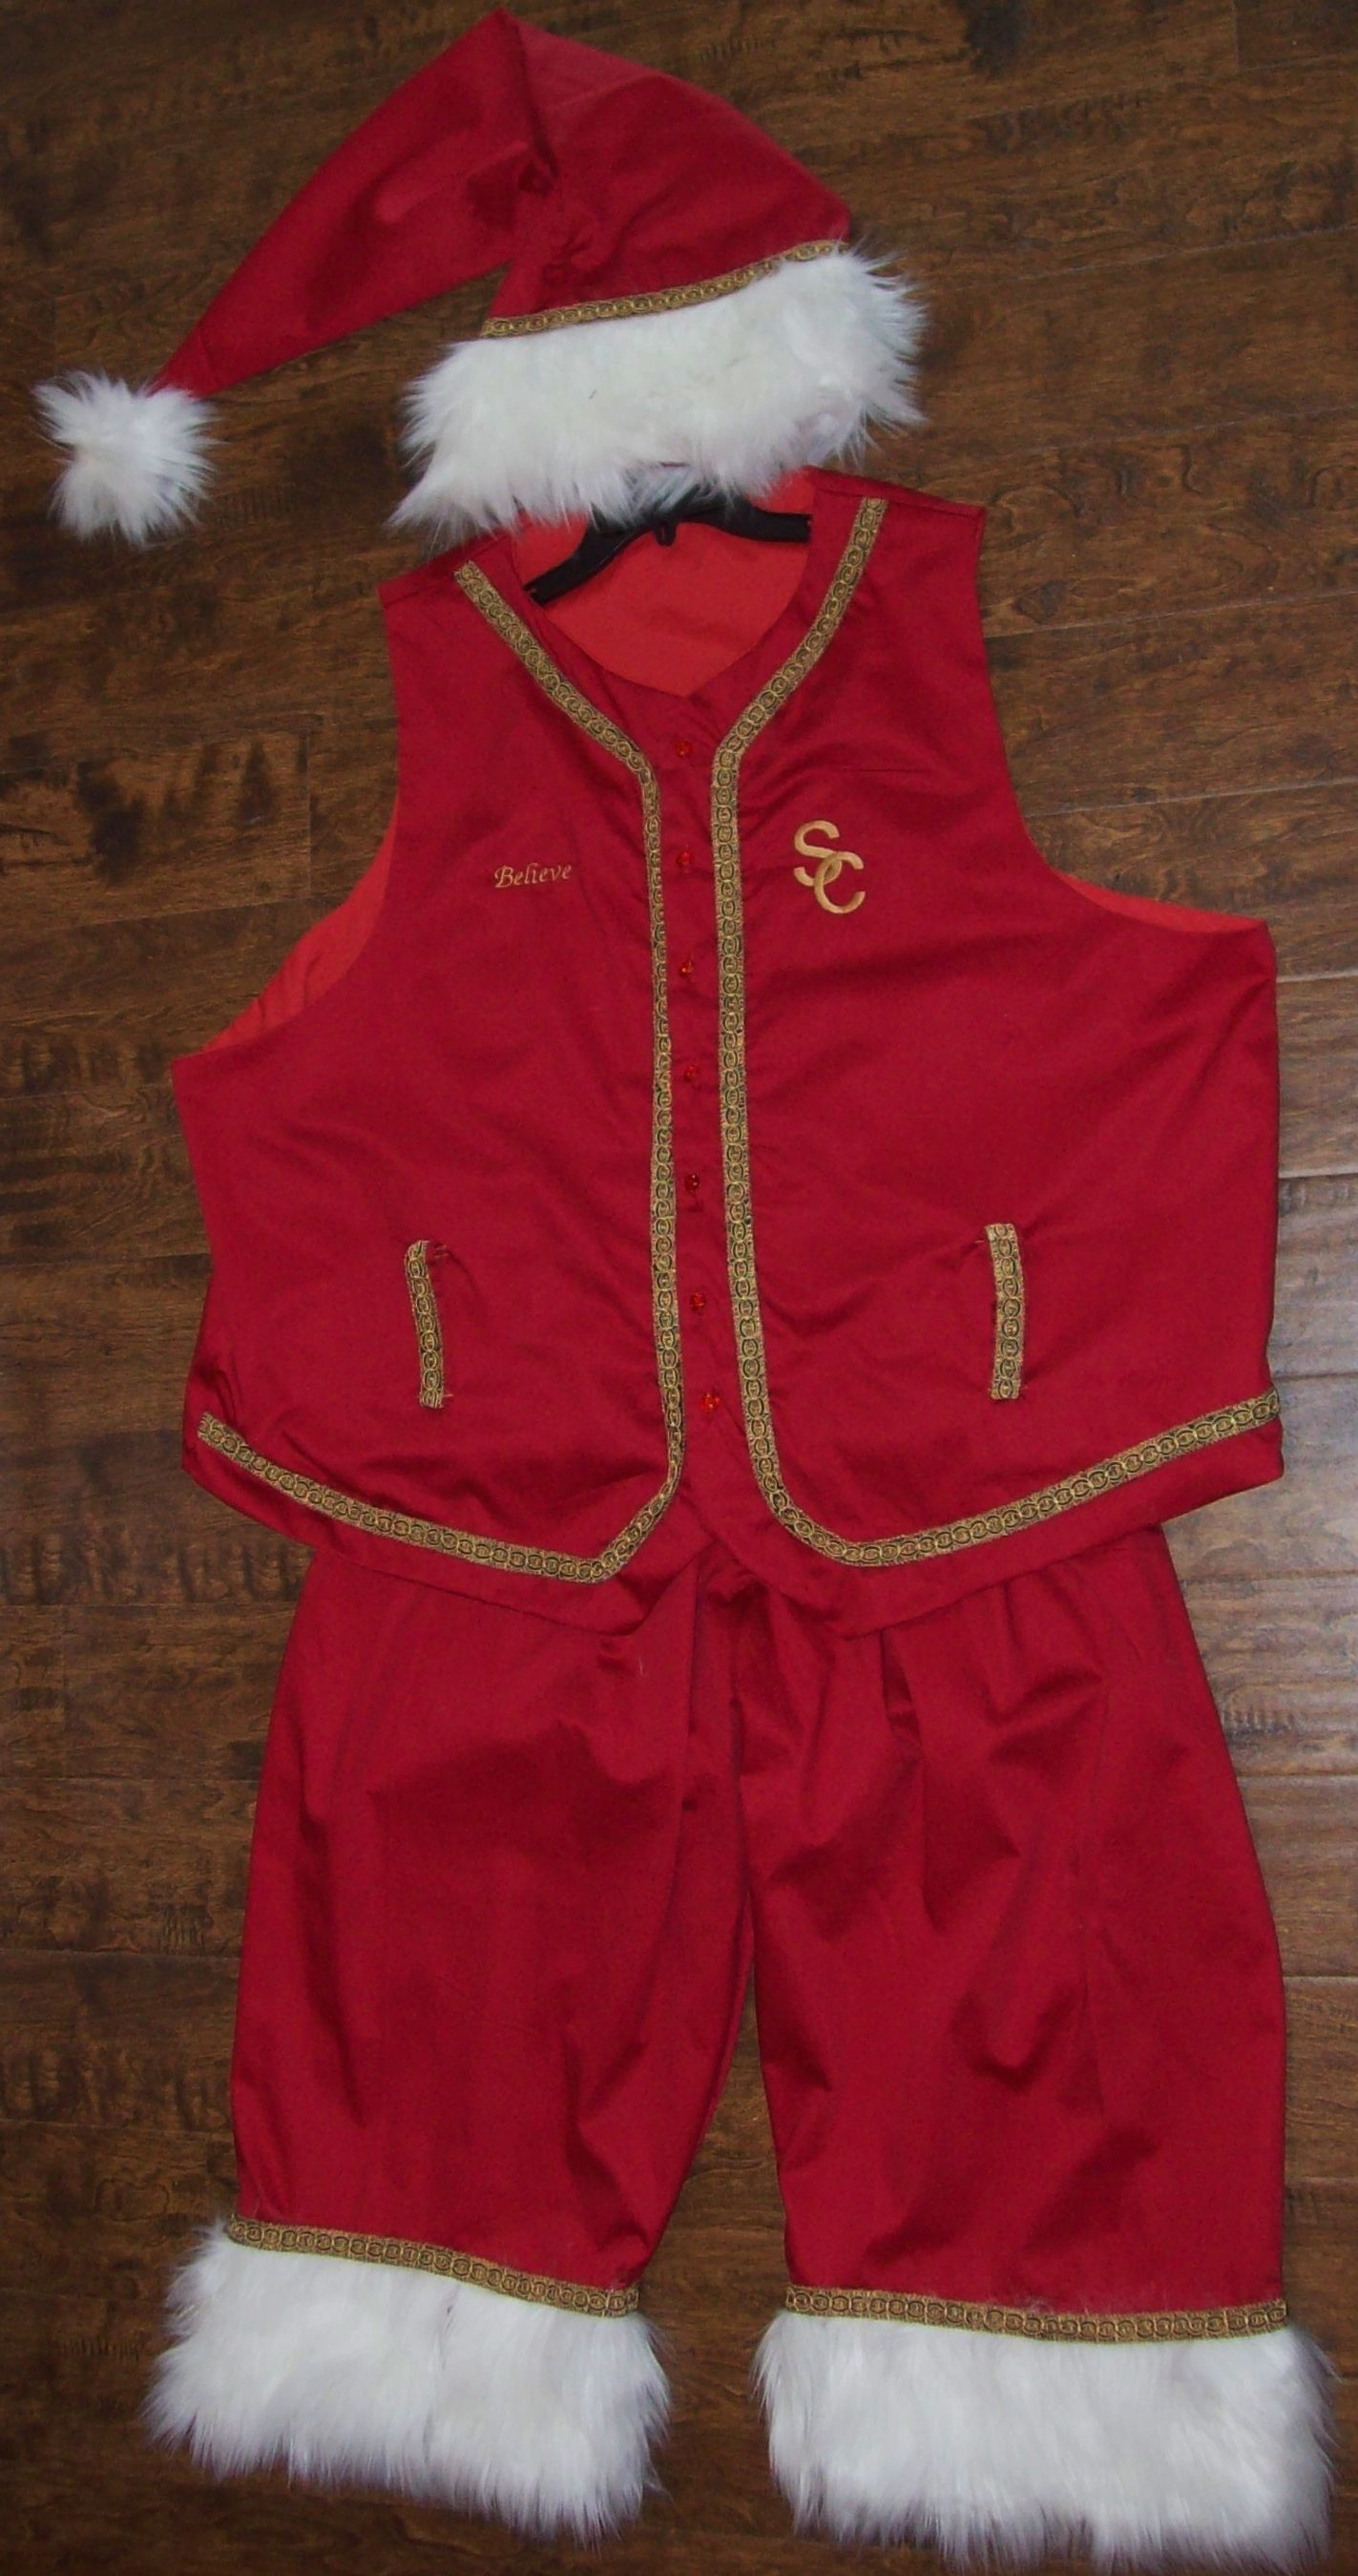 1cabbca6019 Three piece Santa suit   outift one of a kind custom made ready to ship  4X 5X